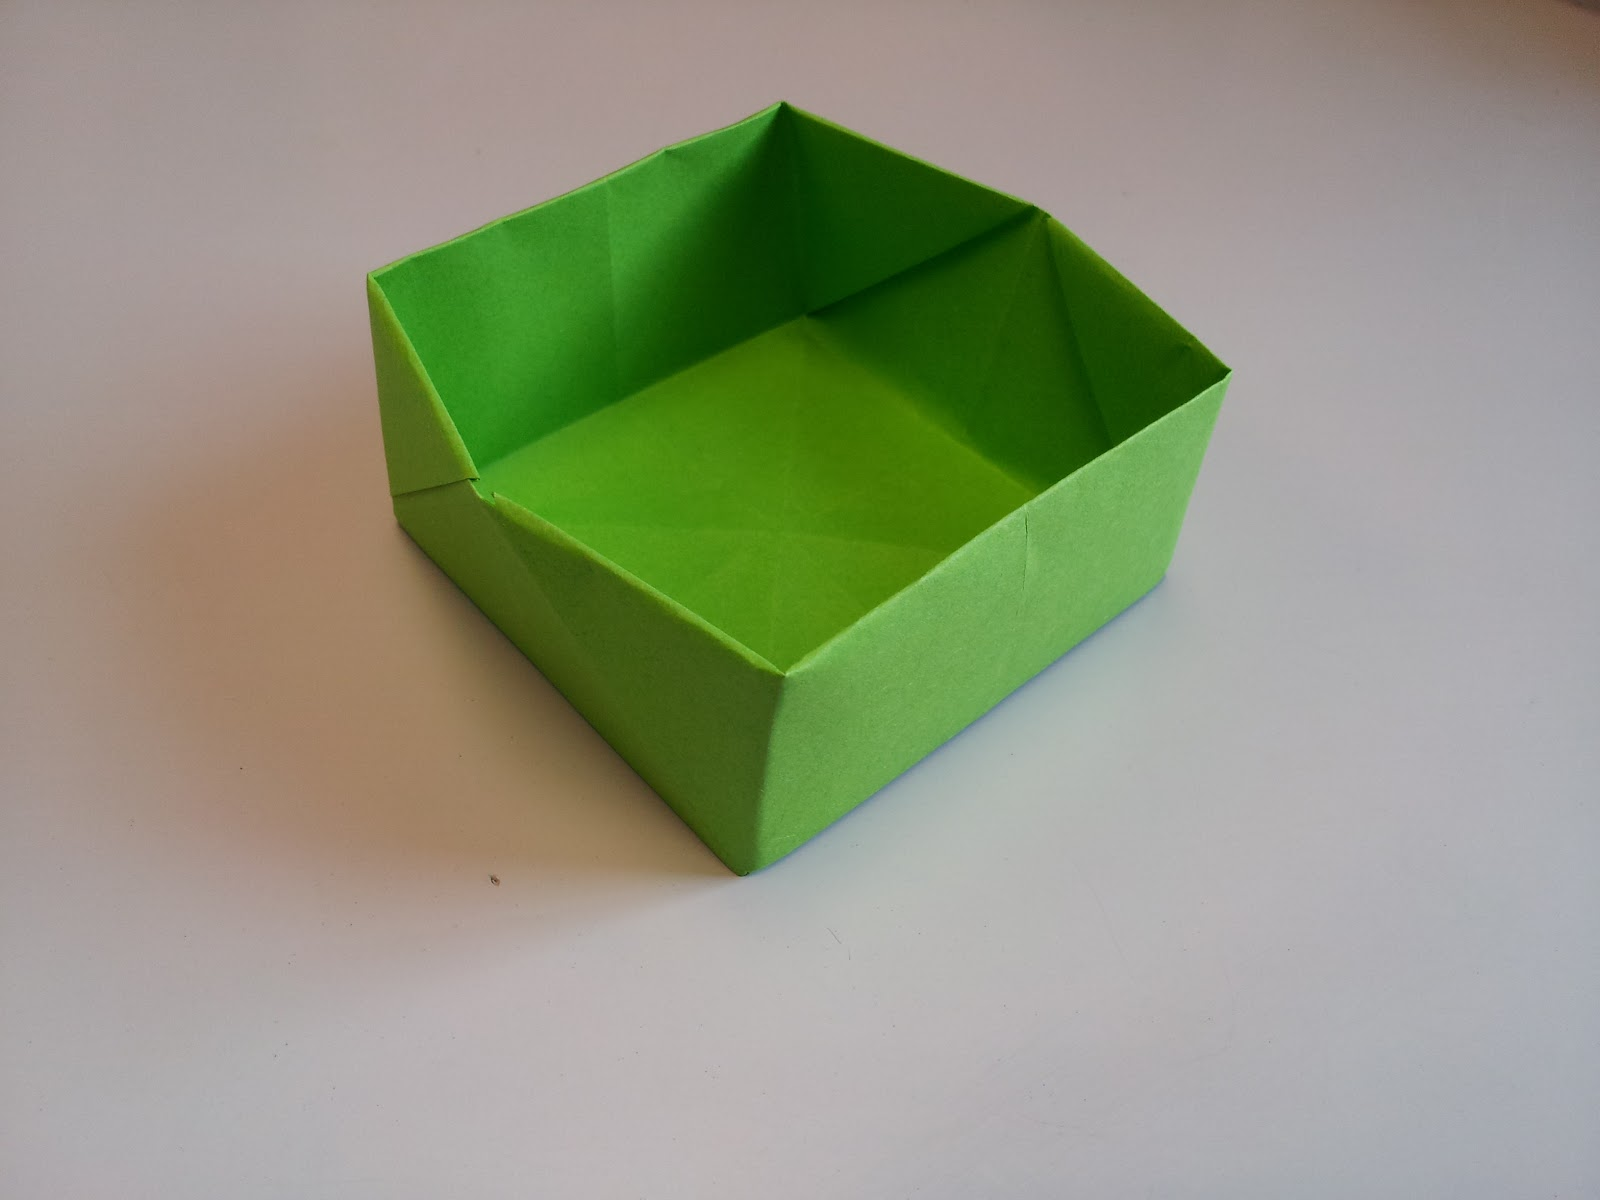 Paper Moon: How to Make an Origami Box - photo#9